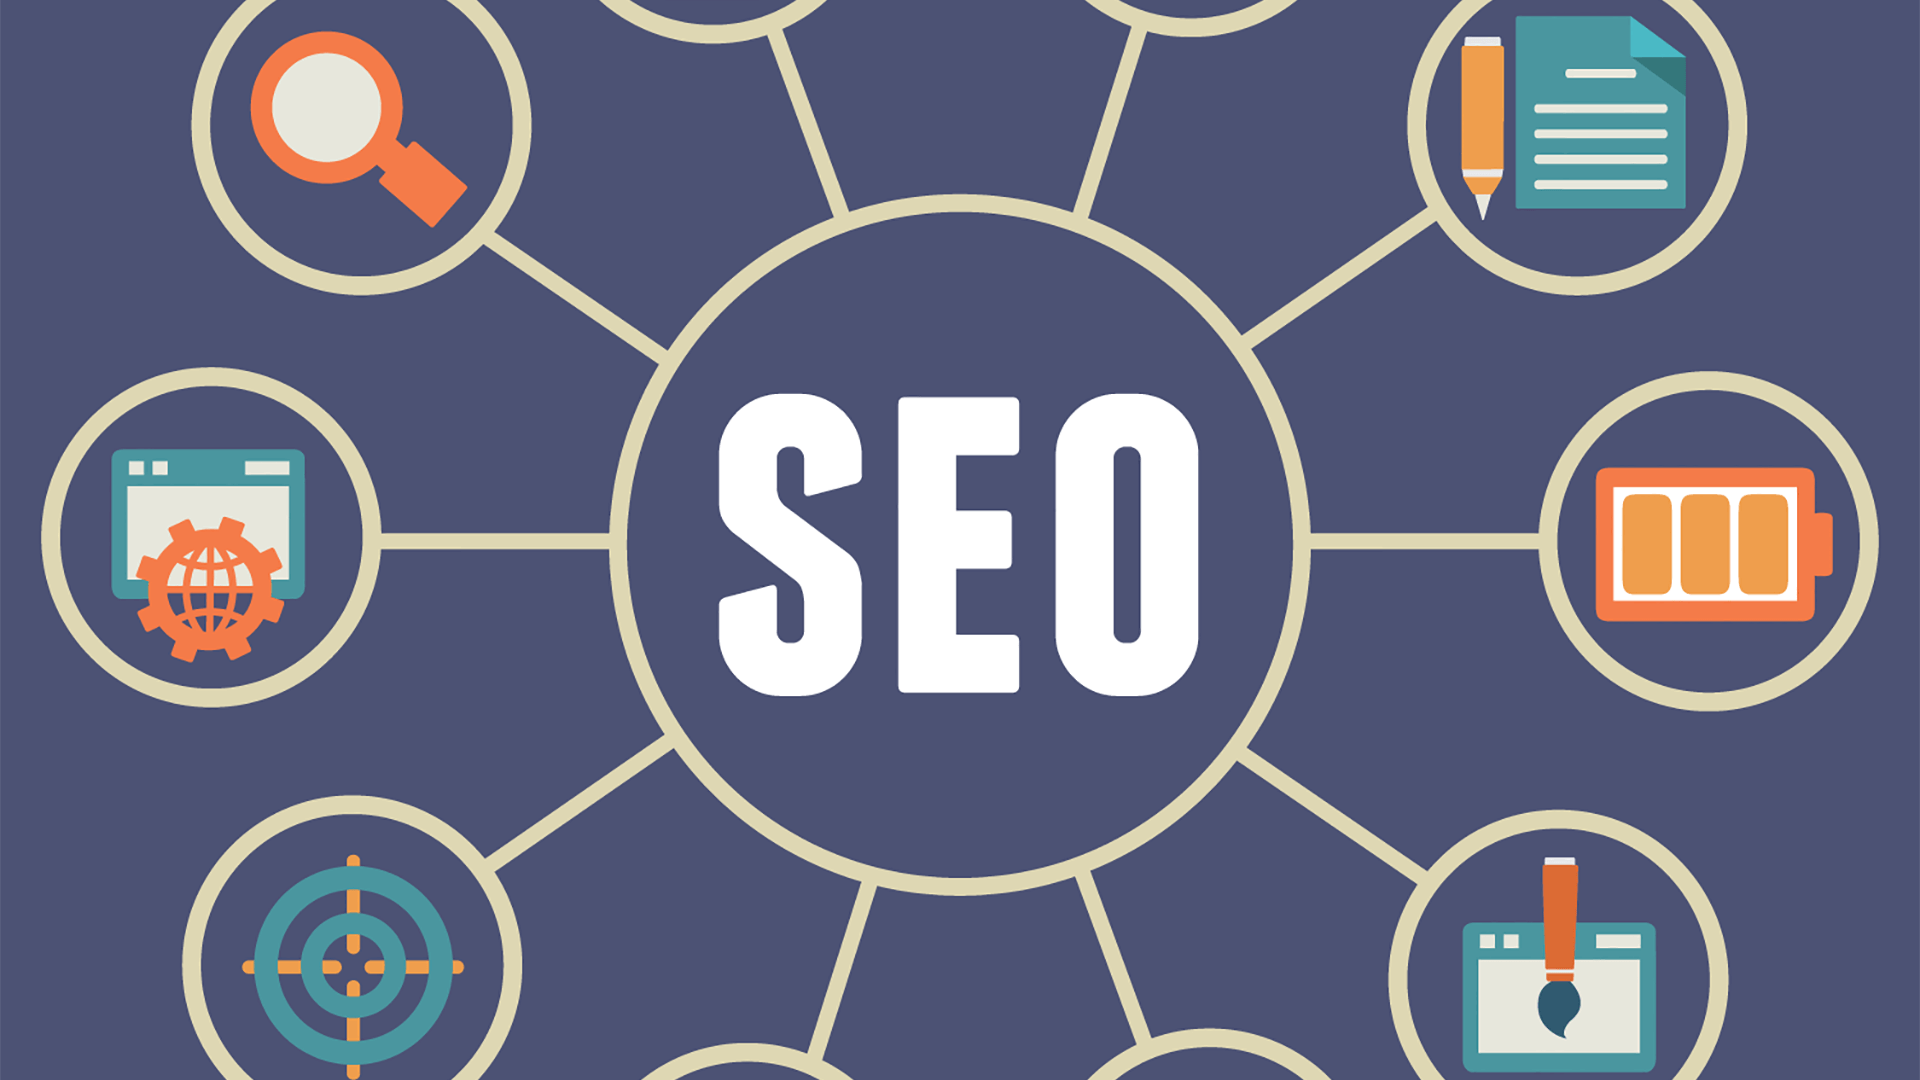 How To Have SEO With Minimal Spending